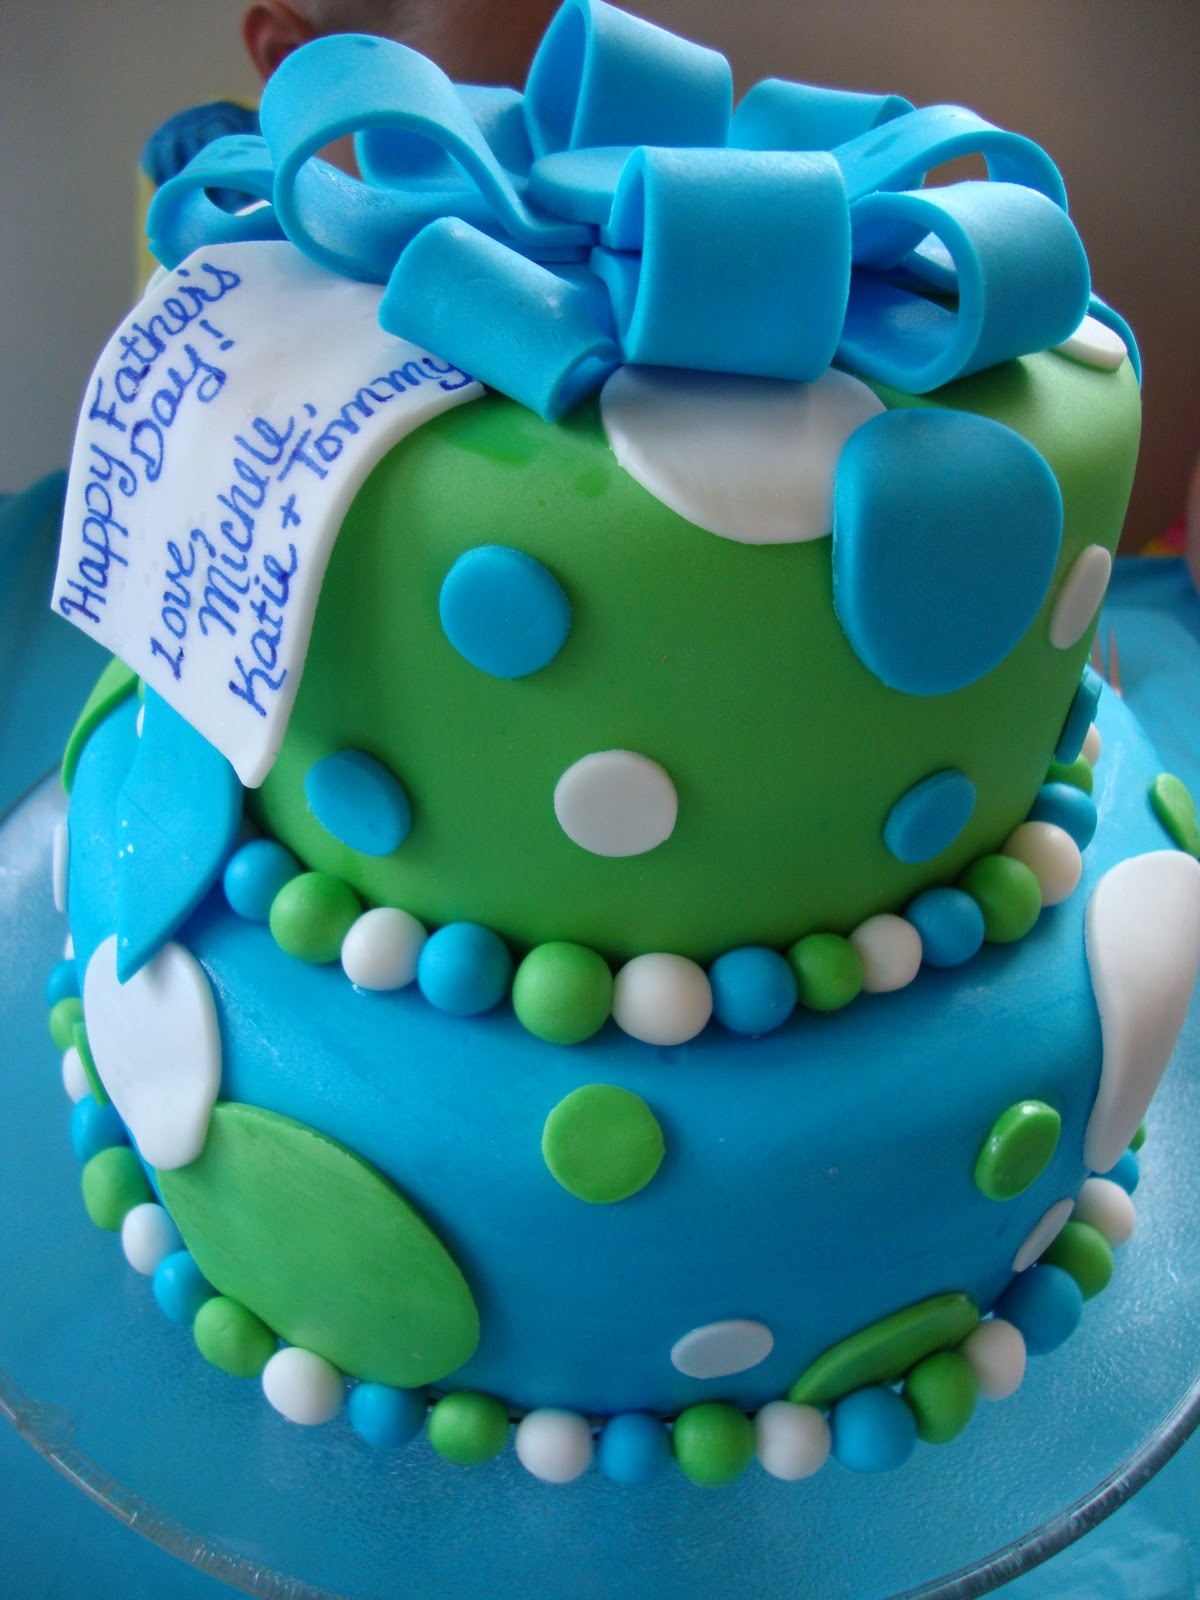 Whimsy Girls Cakes Blue Amp Green Polka Dot Cake